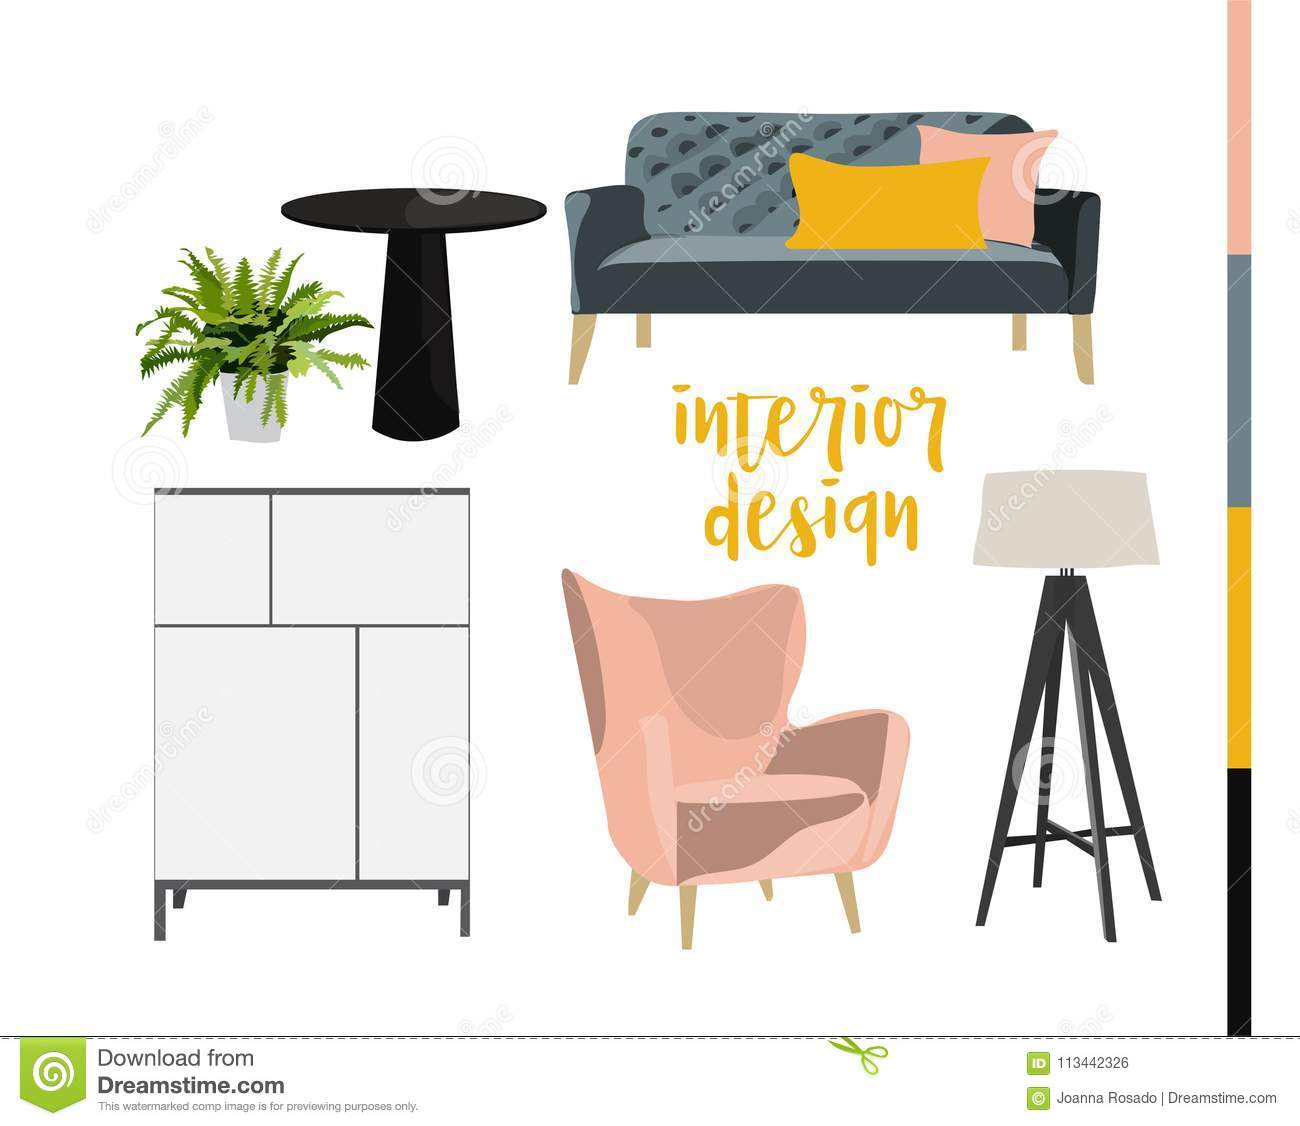 Interior Design Hand Drawn Elements Collection Furniture Drawing Vector Illustration Stock Vector Illustration Of Architecture Contemporary 113442326